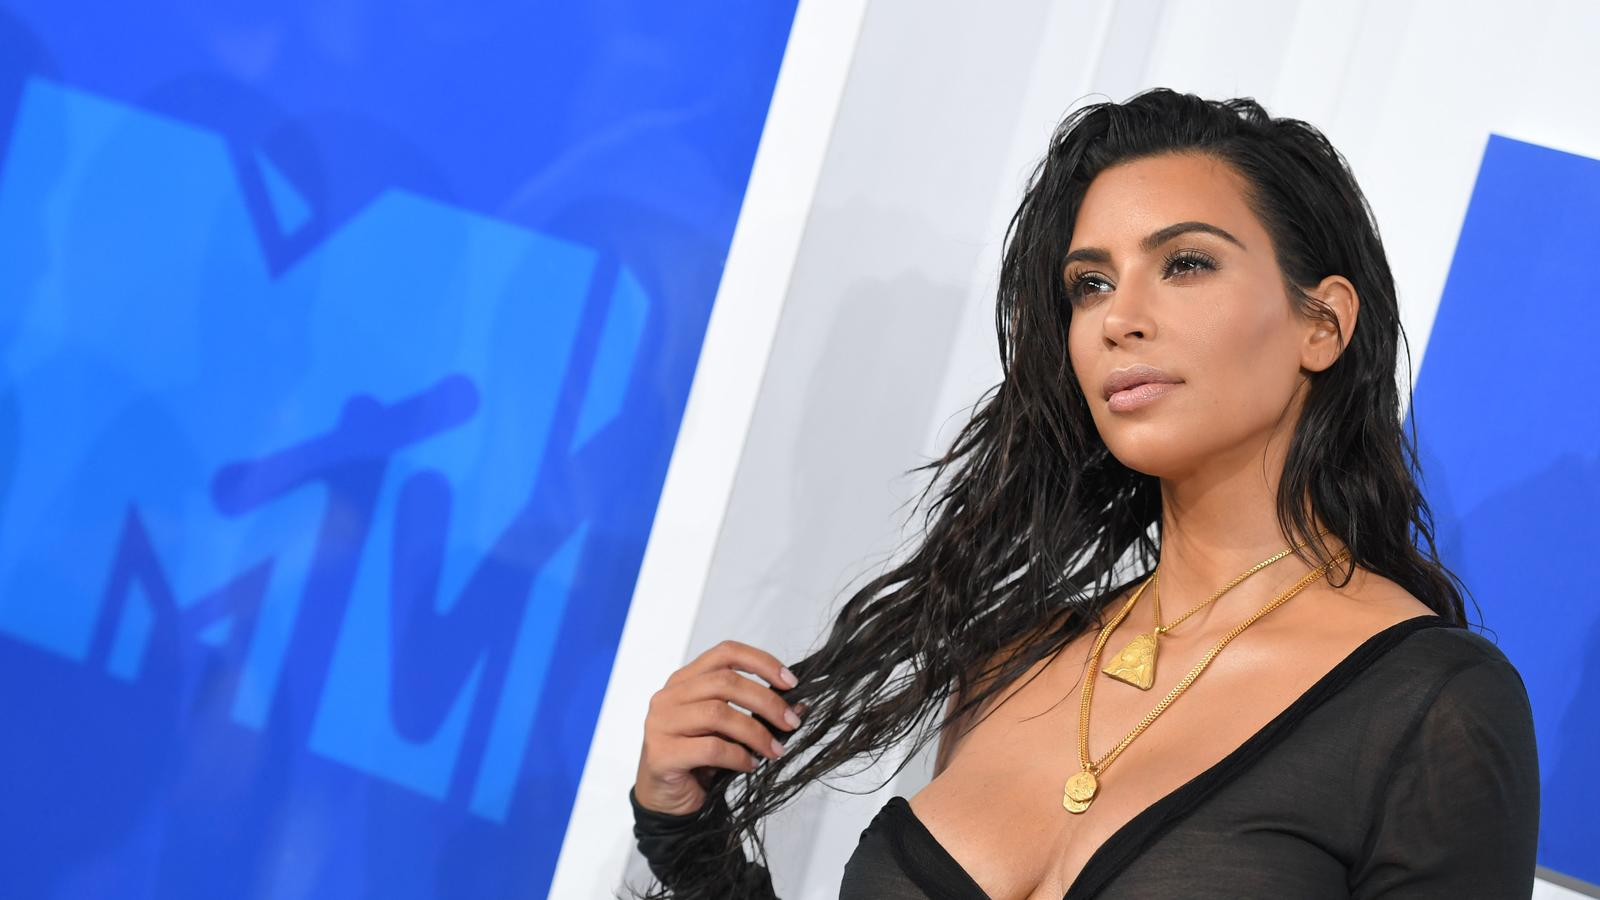 Kim Kardashian West bei den MTV Video Music Awards